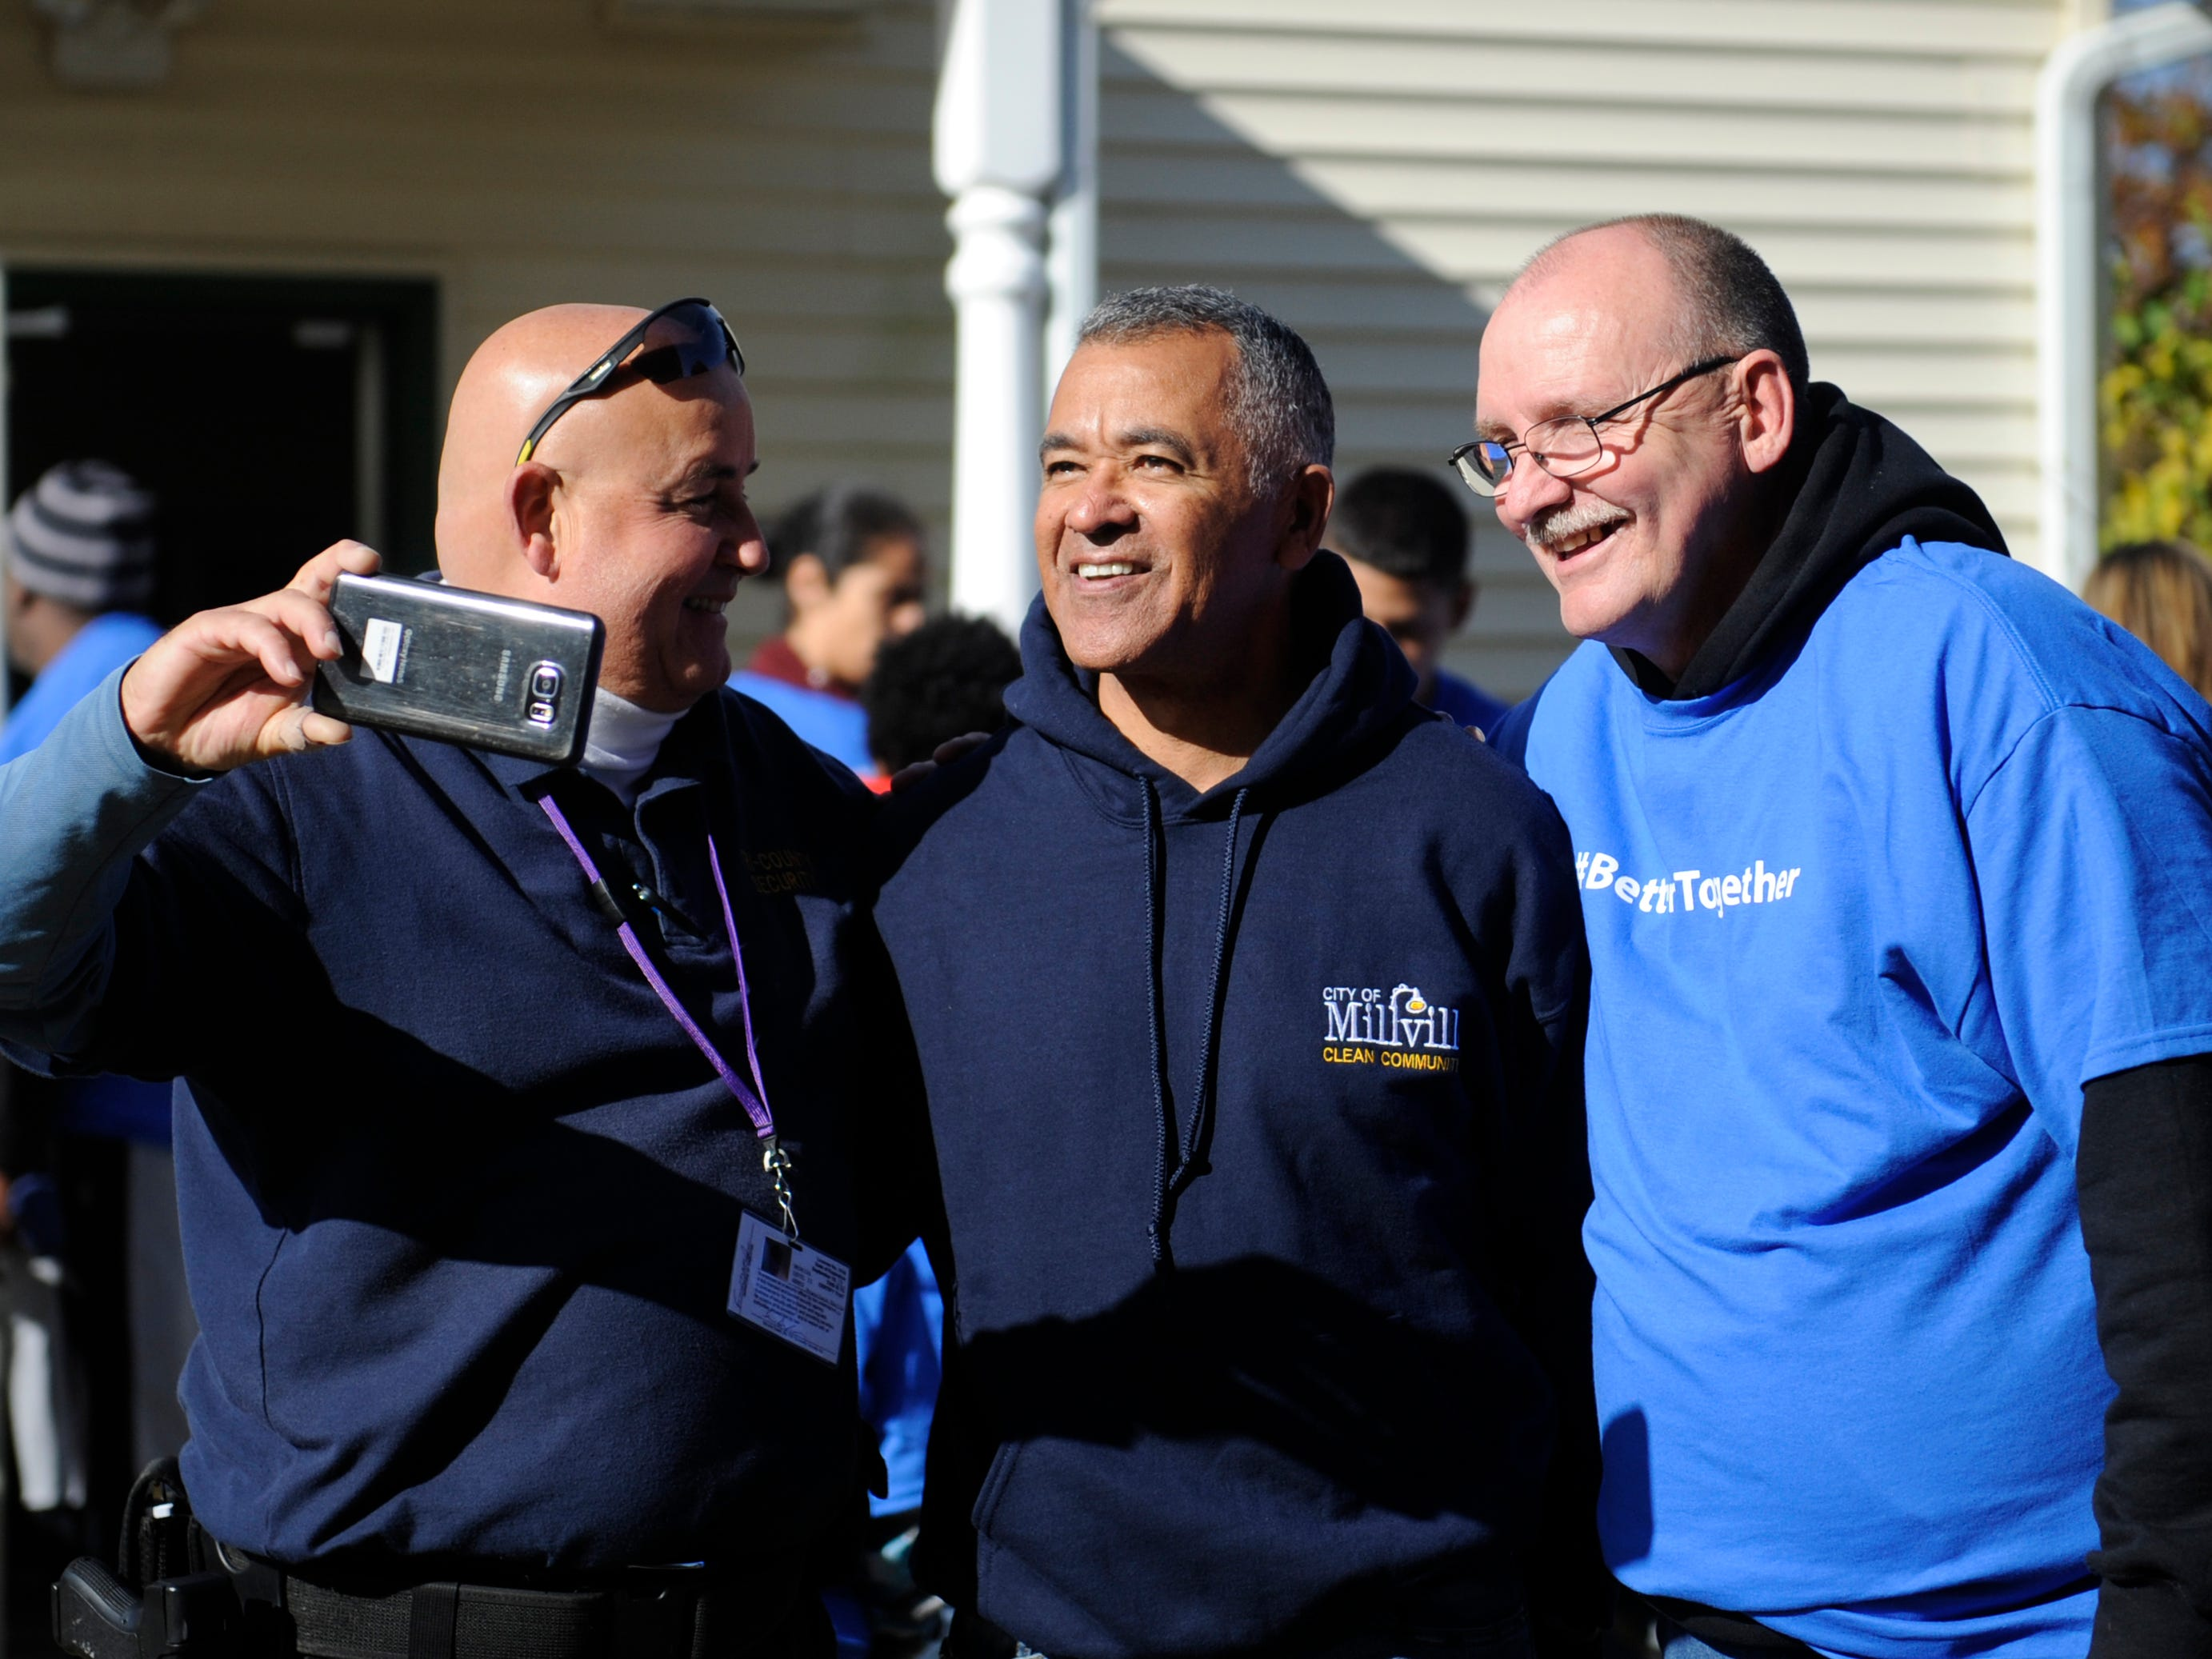 Millville Mayor Michael Santiago (center) poses for a picture with Oakview Apartments clean up volunteers during a special community event.